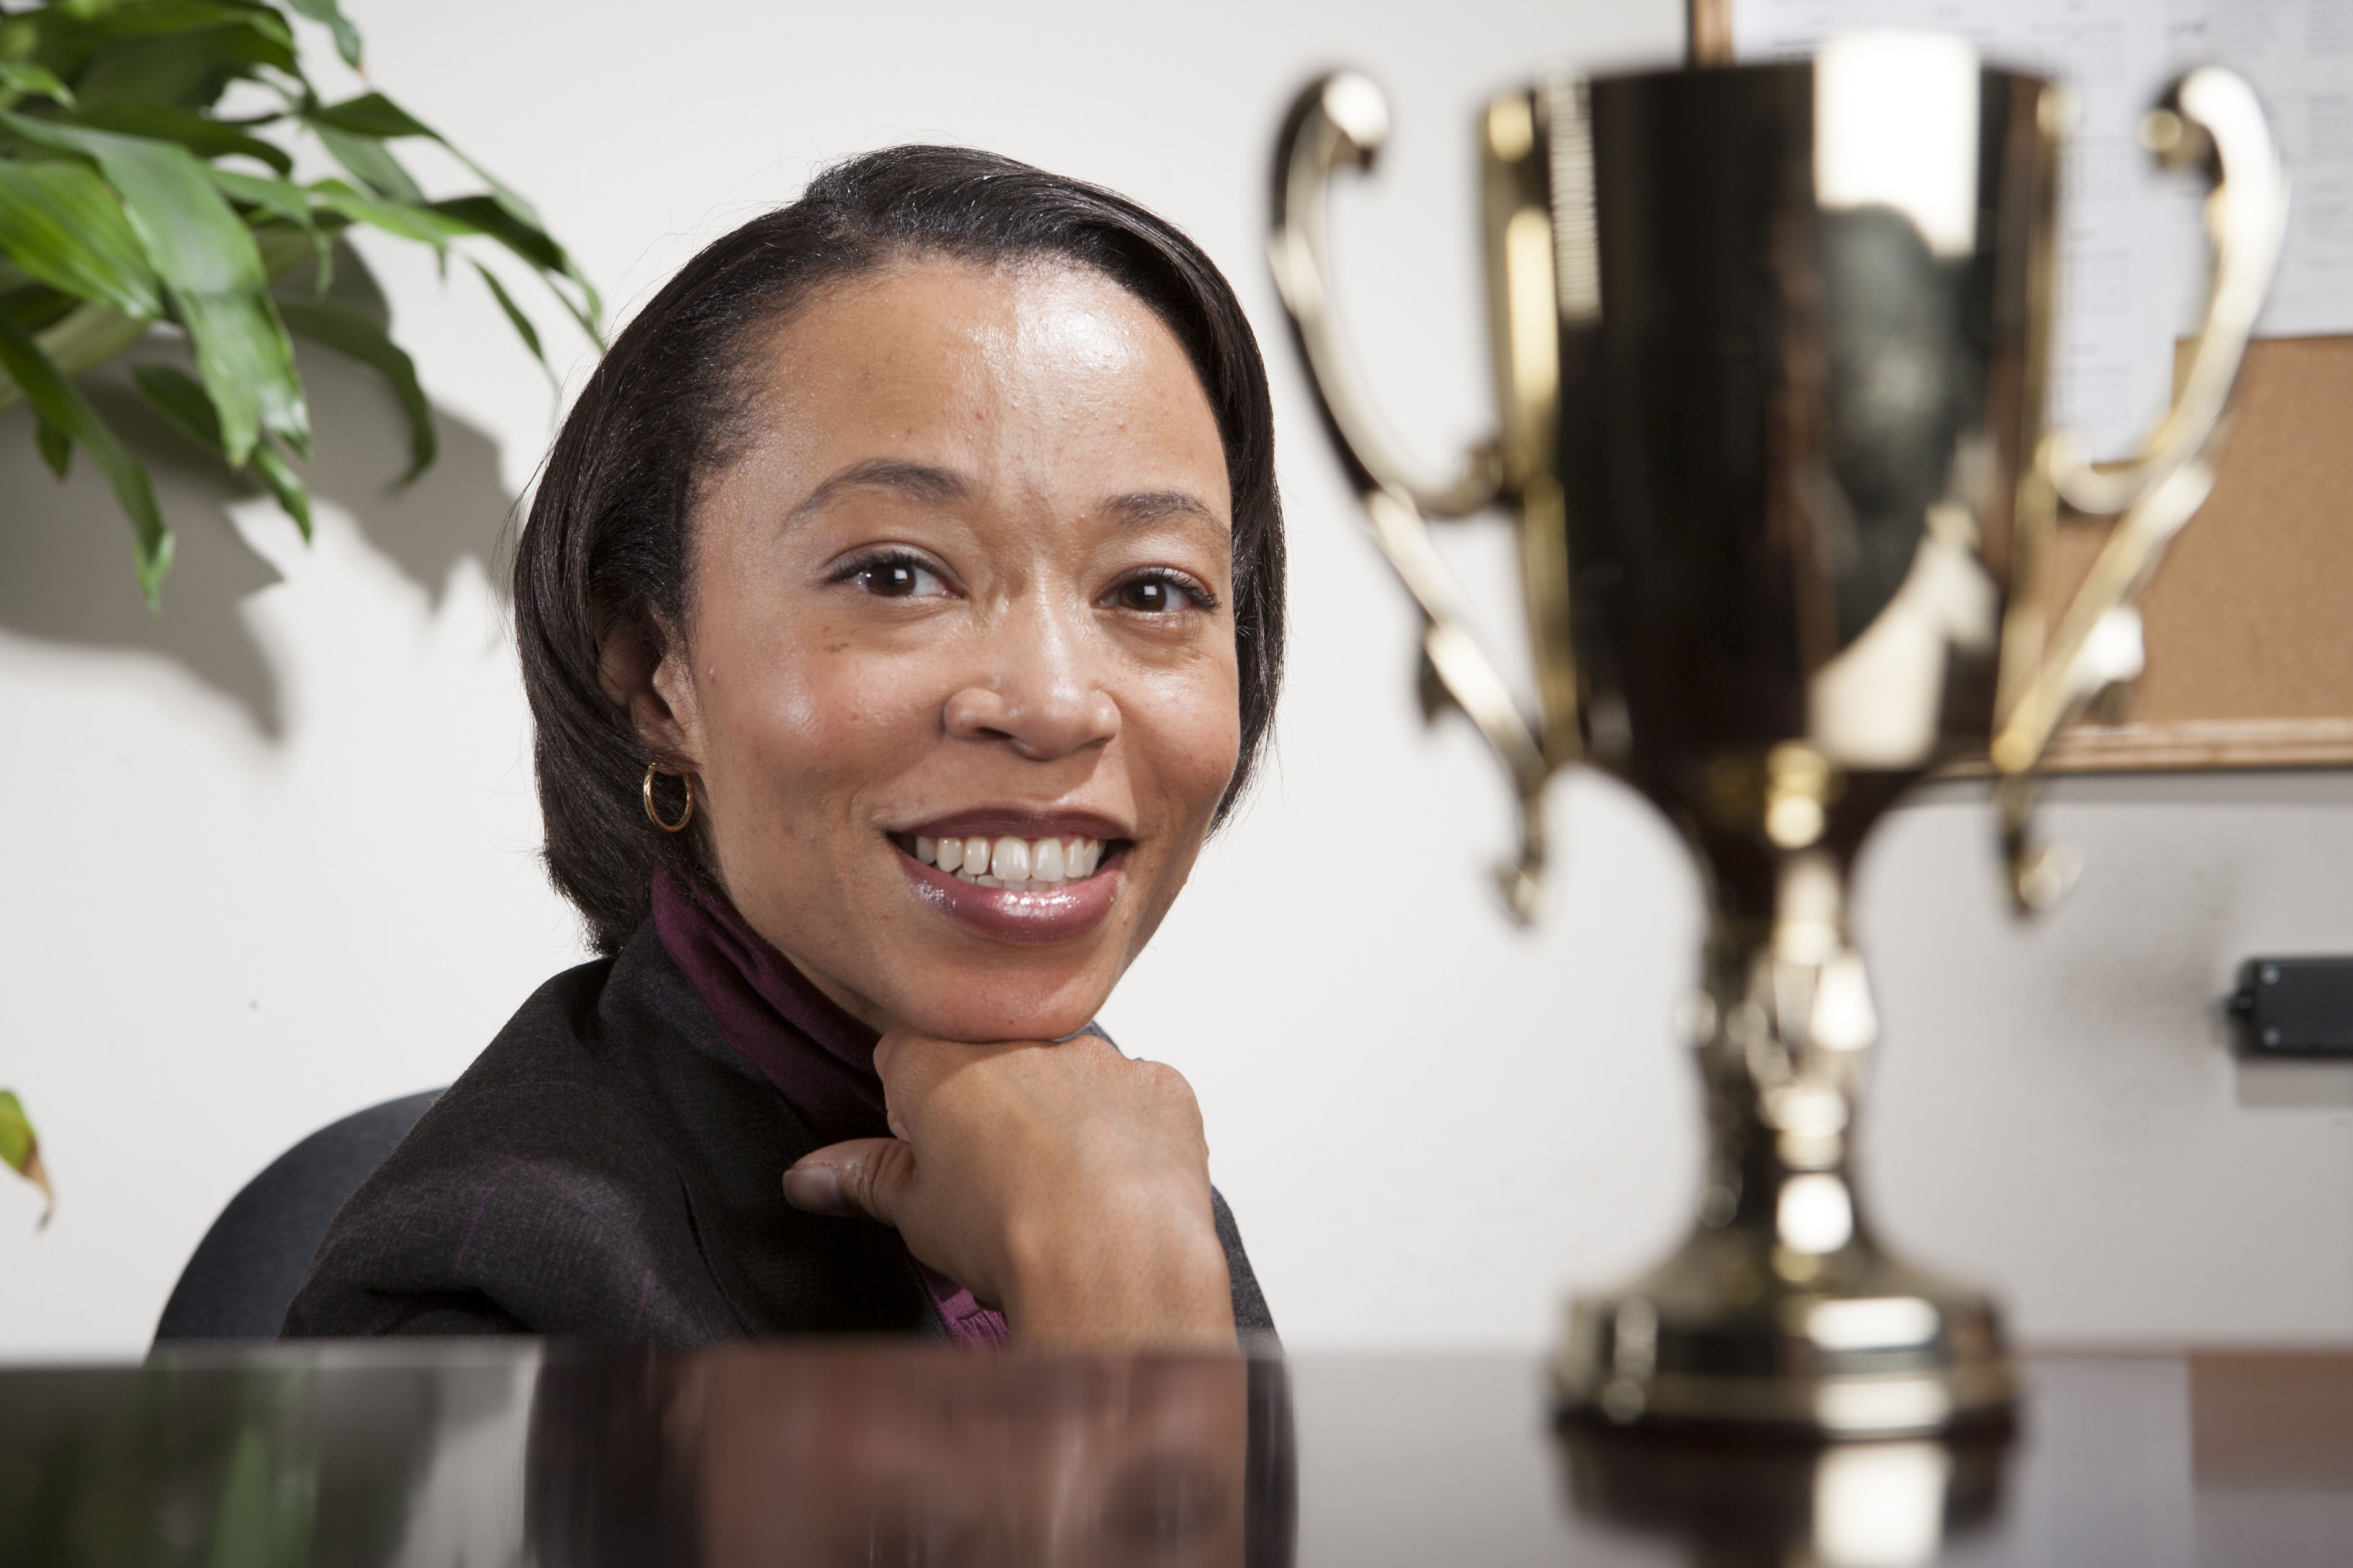 Image of woman with award